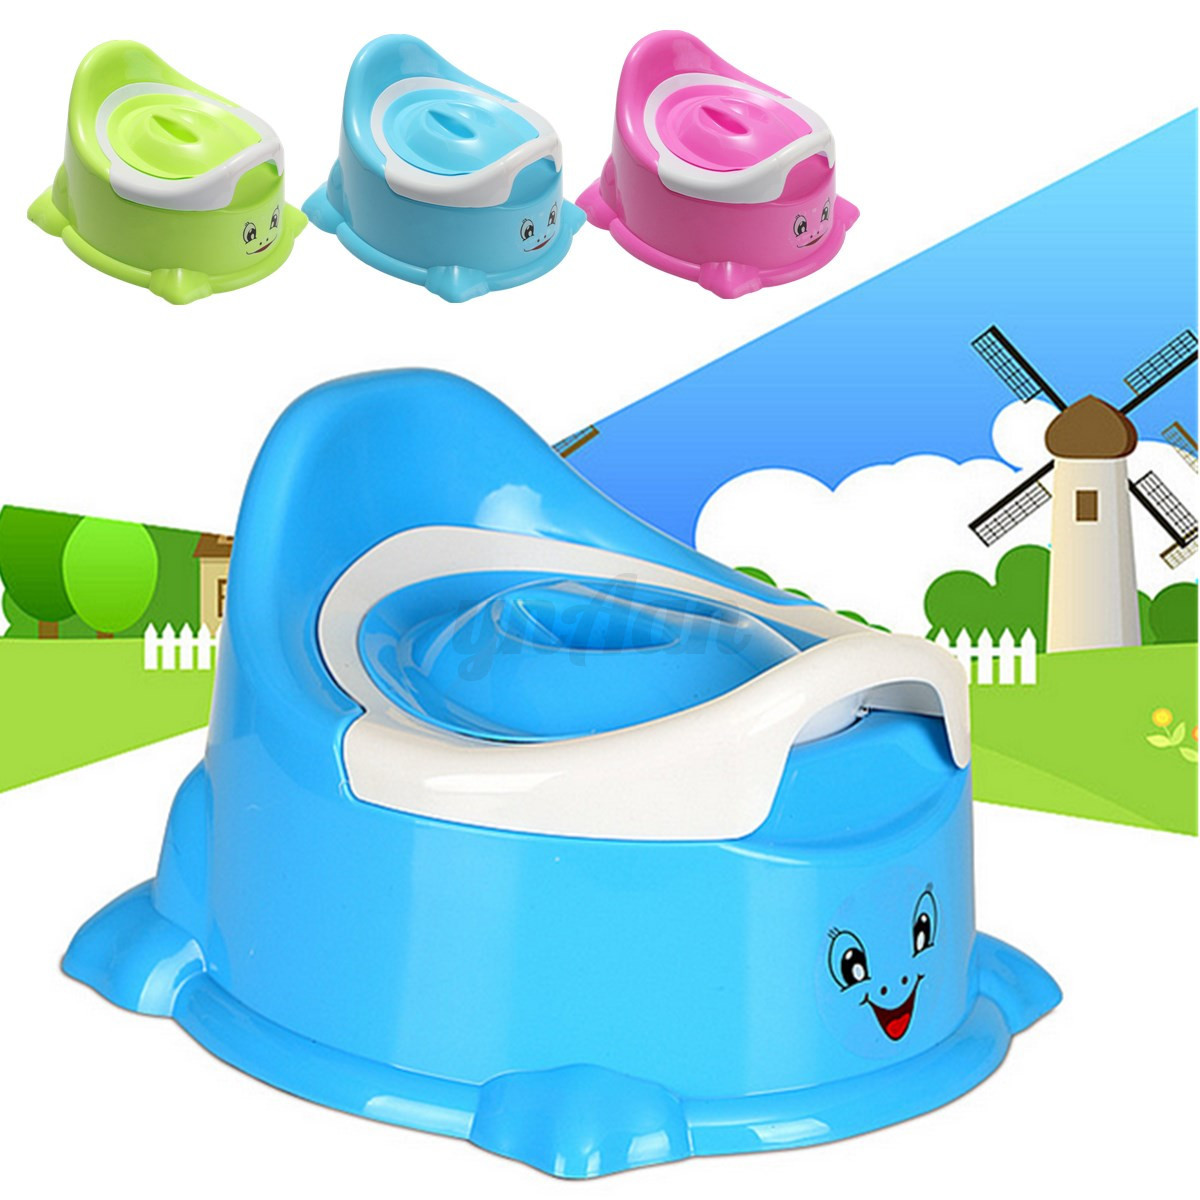 childrens potty chairs swivel glider chair new portable cartoon toilet seat baby toddler